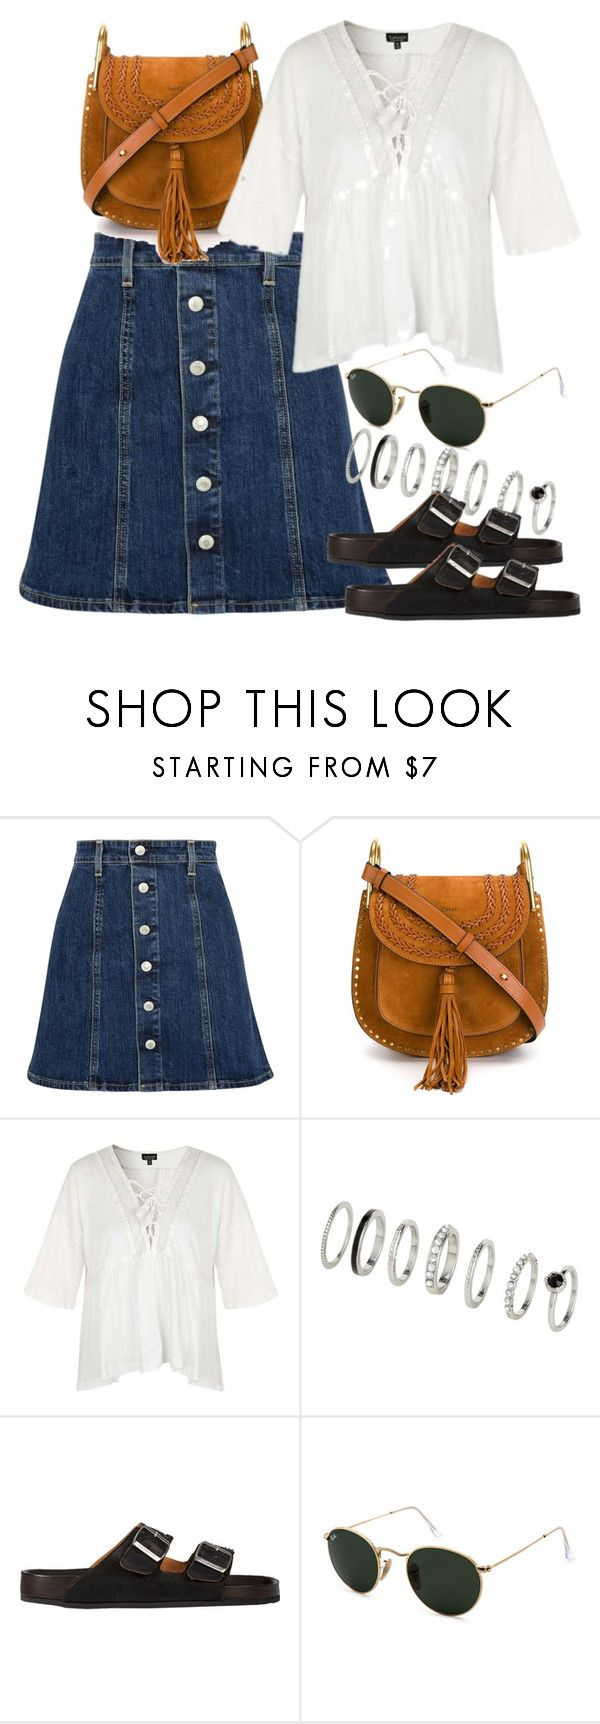 """""""Untitled #5740"""" by rachellouisewilliamson ❤ liked on Polyvore featuring Chloé, Topshop, Étoile Isabel Marant and Ray-Ban"""